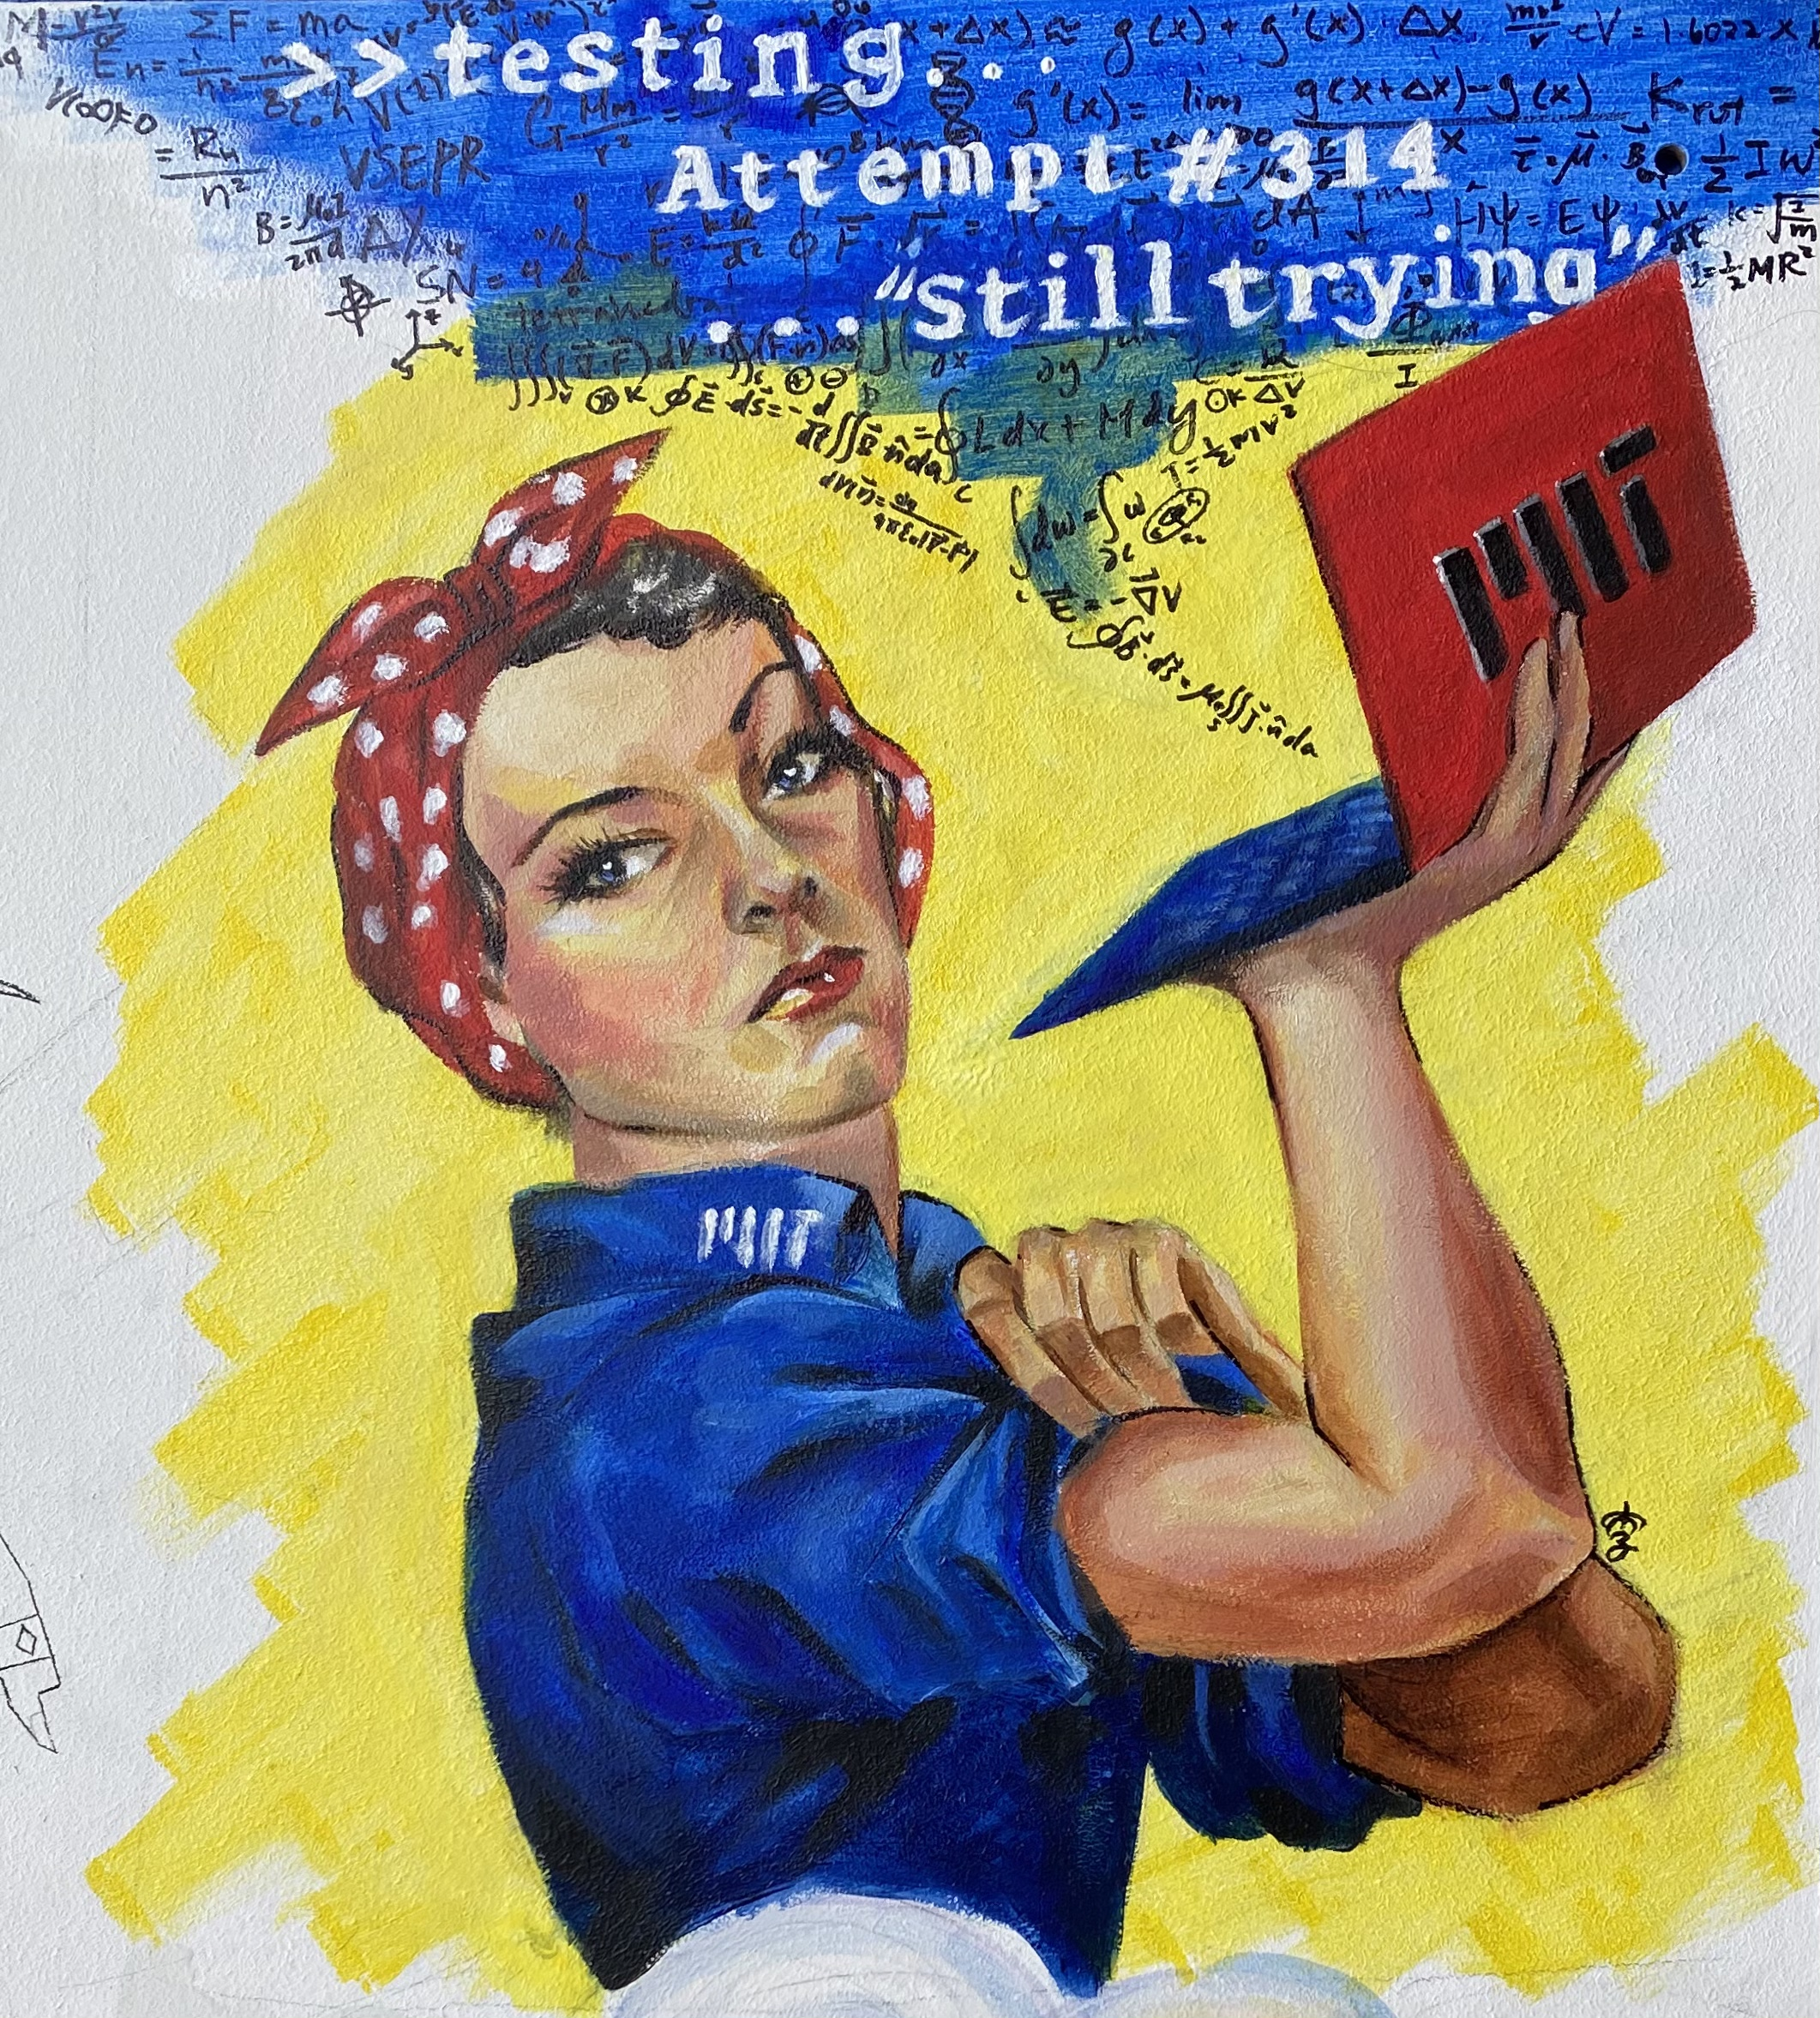 painting of a parody of rosie the riveter